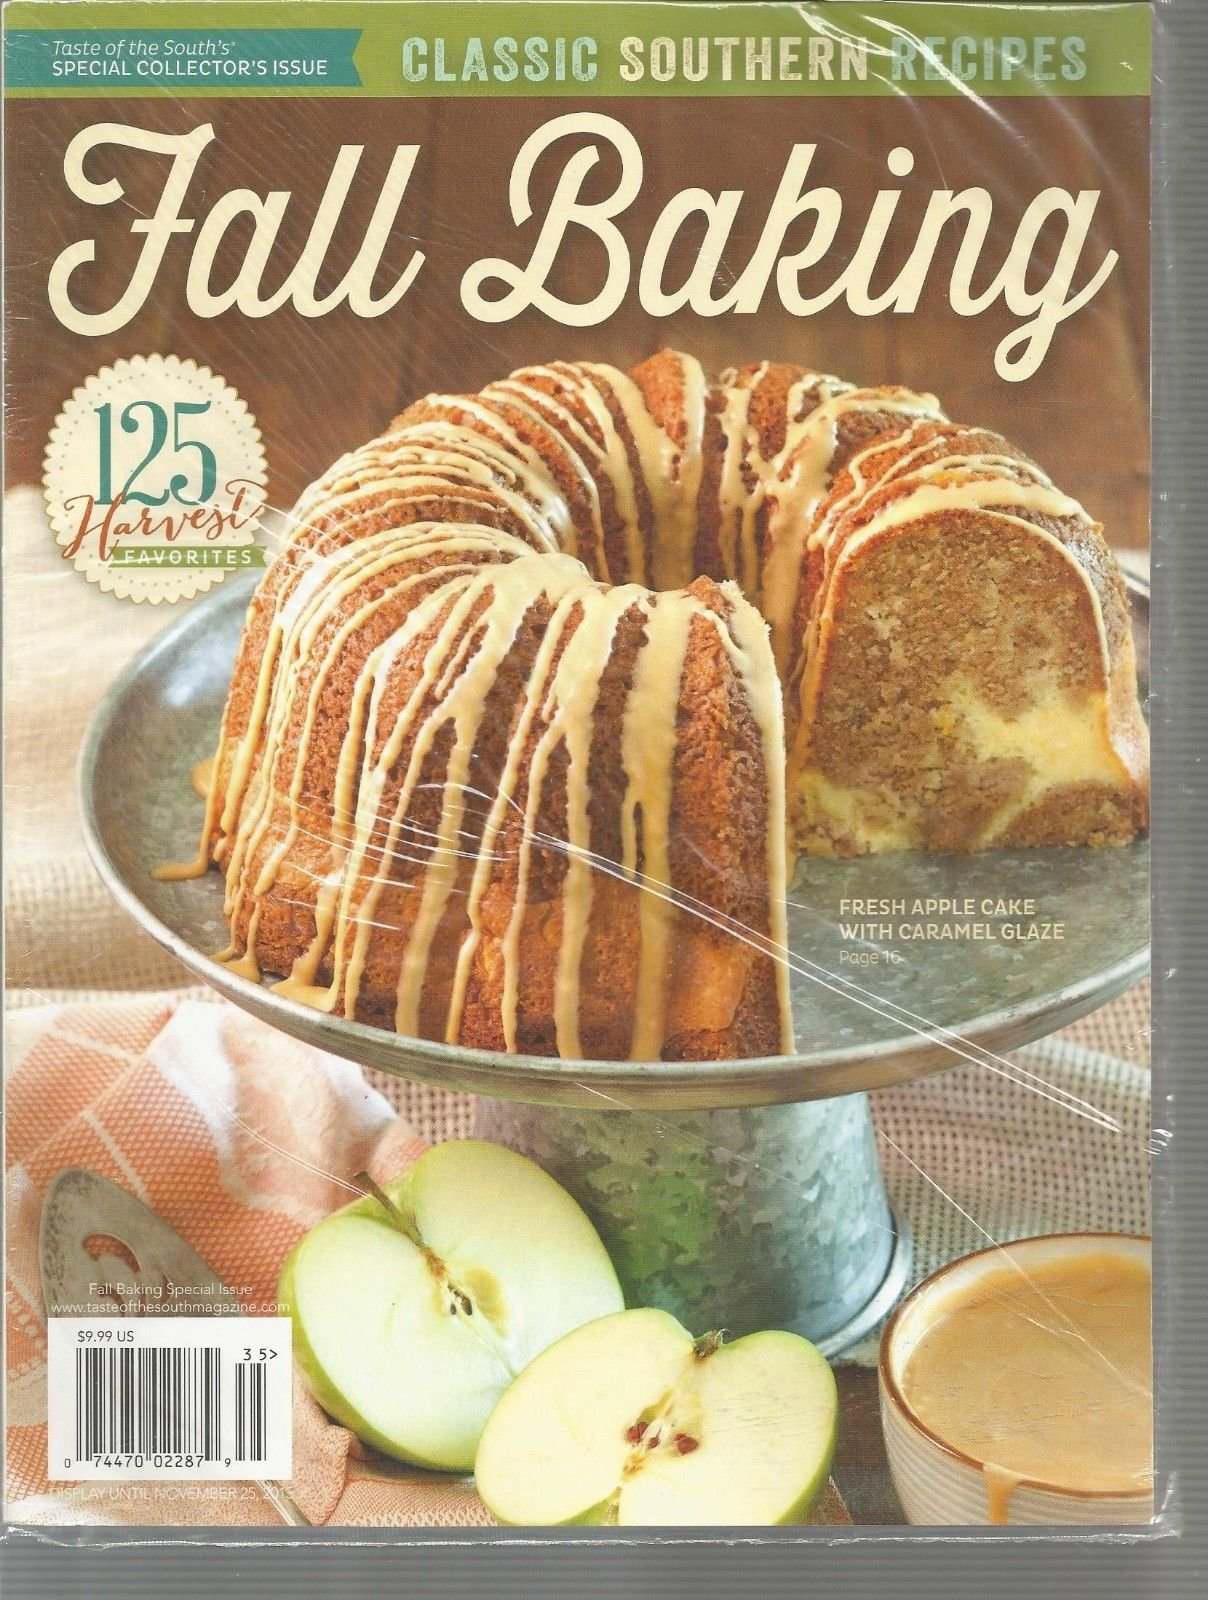 TASTE OF THE SOUTH MAGAZINE,FALL BAKING, SPECIAL ISSUE 2013 ~